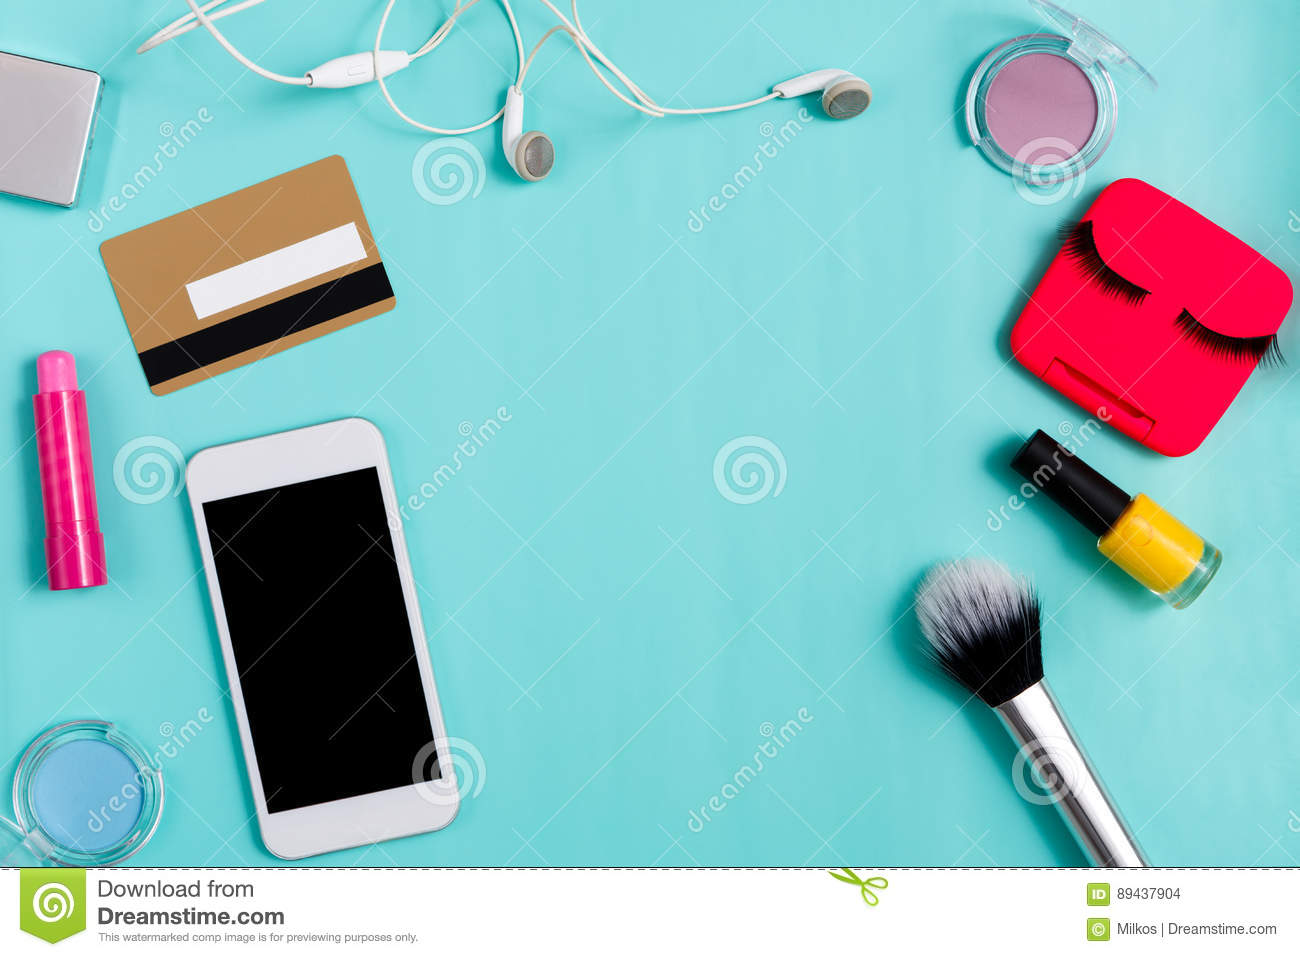 Beauty products online shopping, everyday make-up